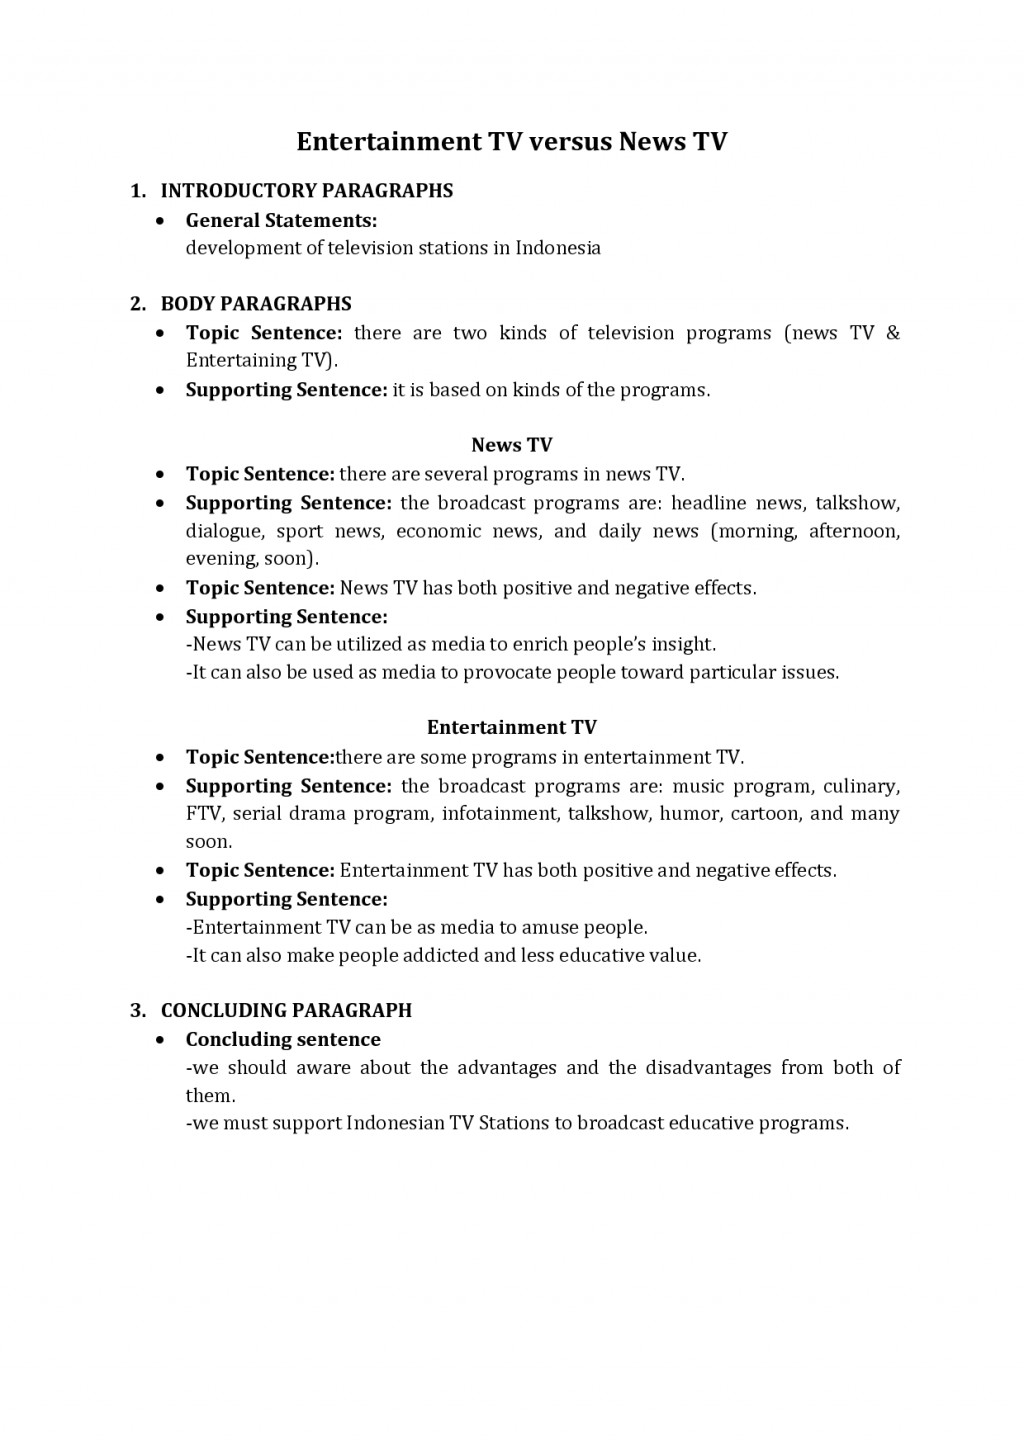 005 Fbunmxinib How To Write An Essay Outline Excellent For University 6th Grade Large